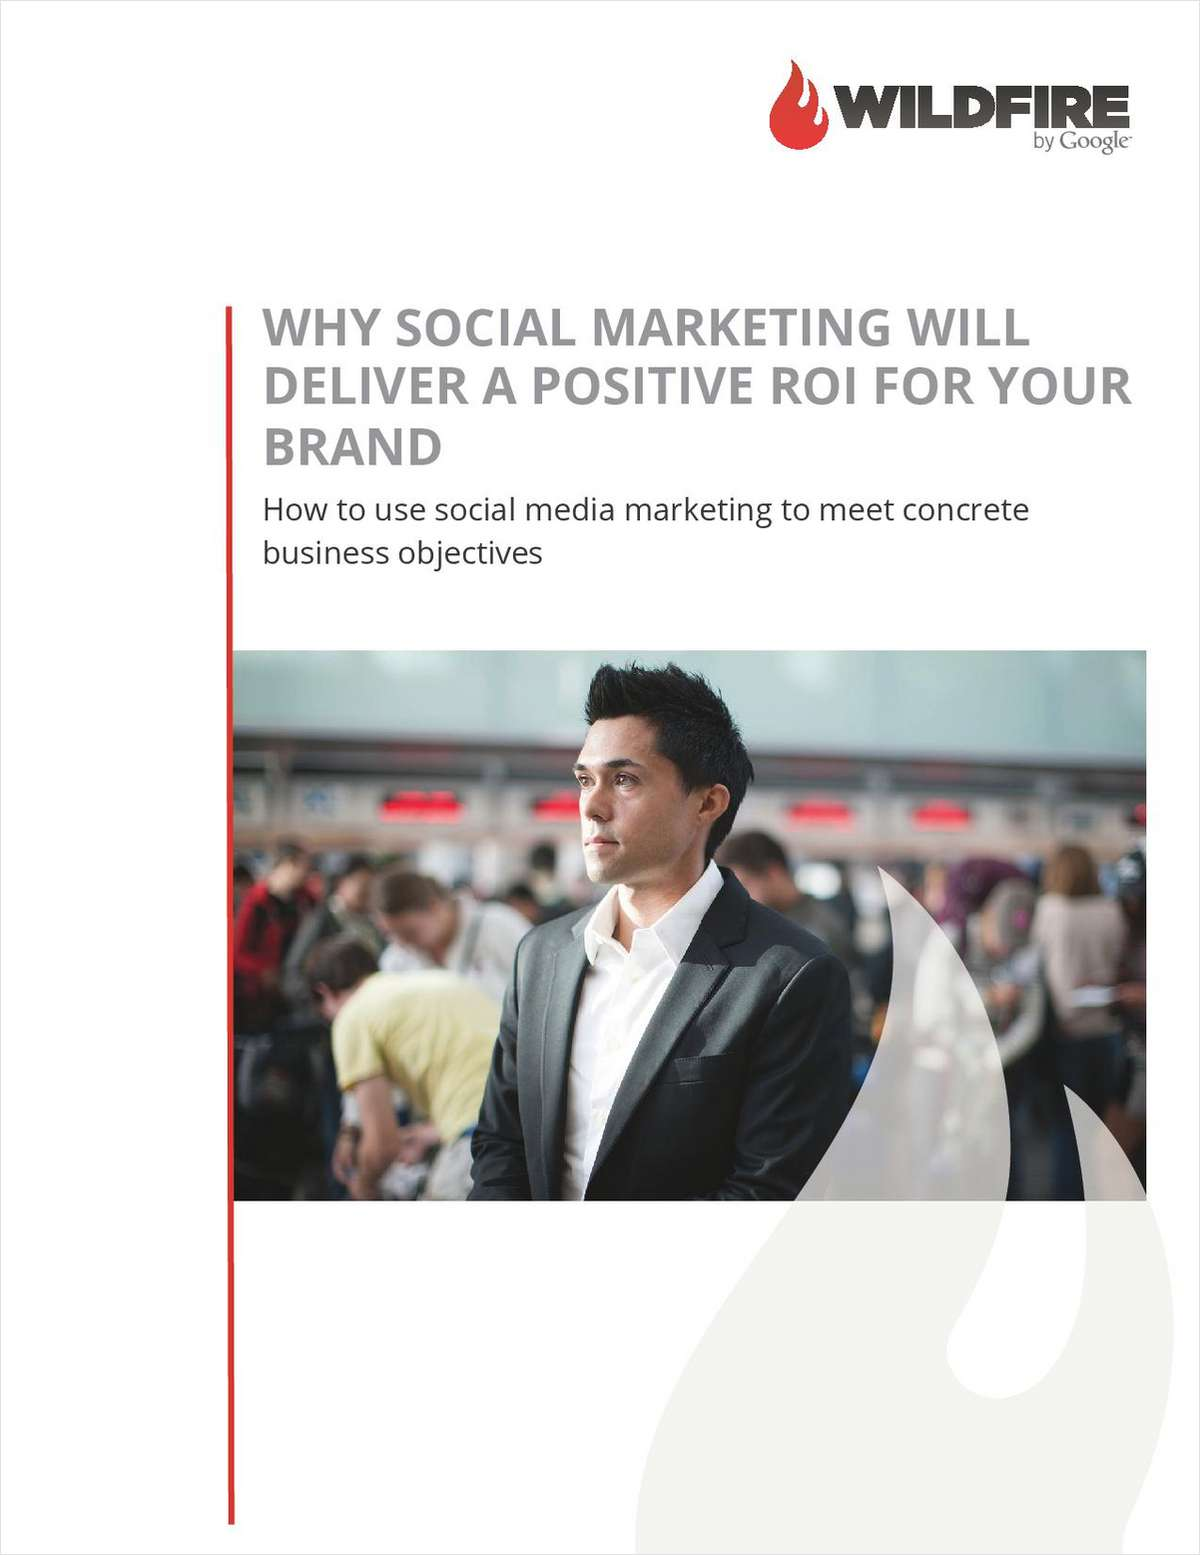 Why Social Marketing Will Deliver a Positive ROI for Your Brand